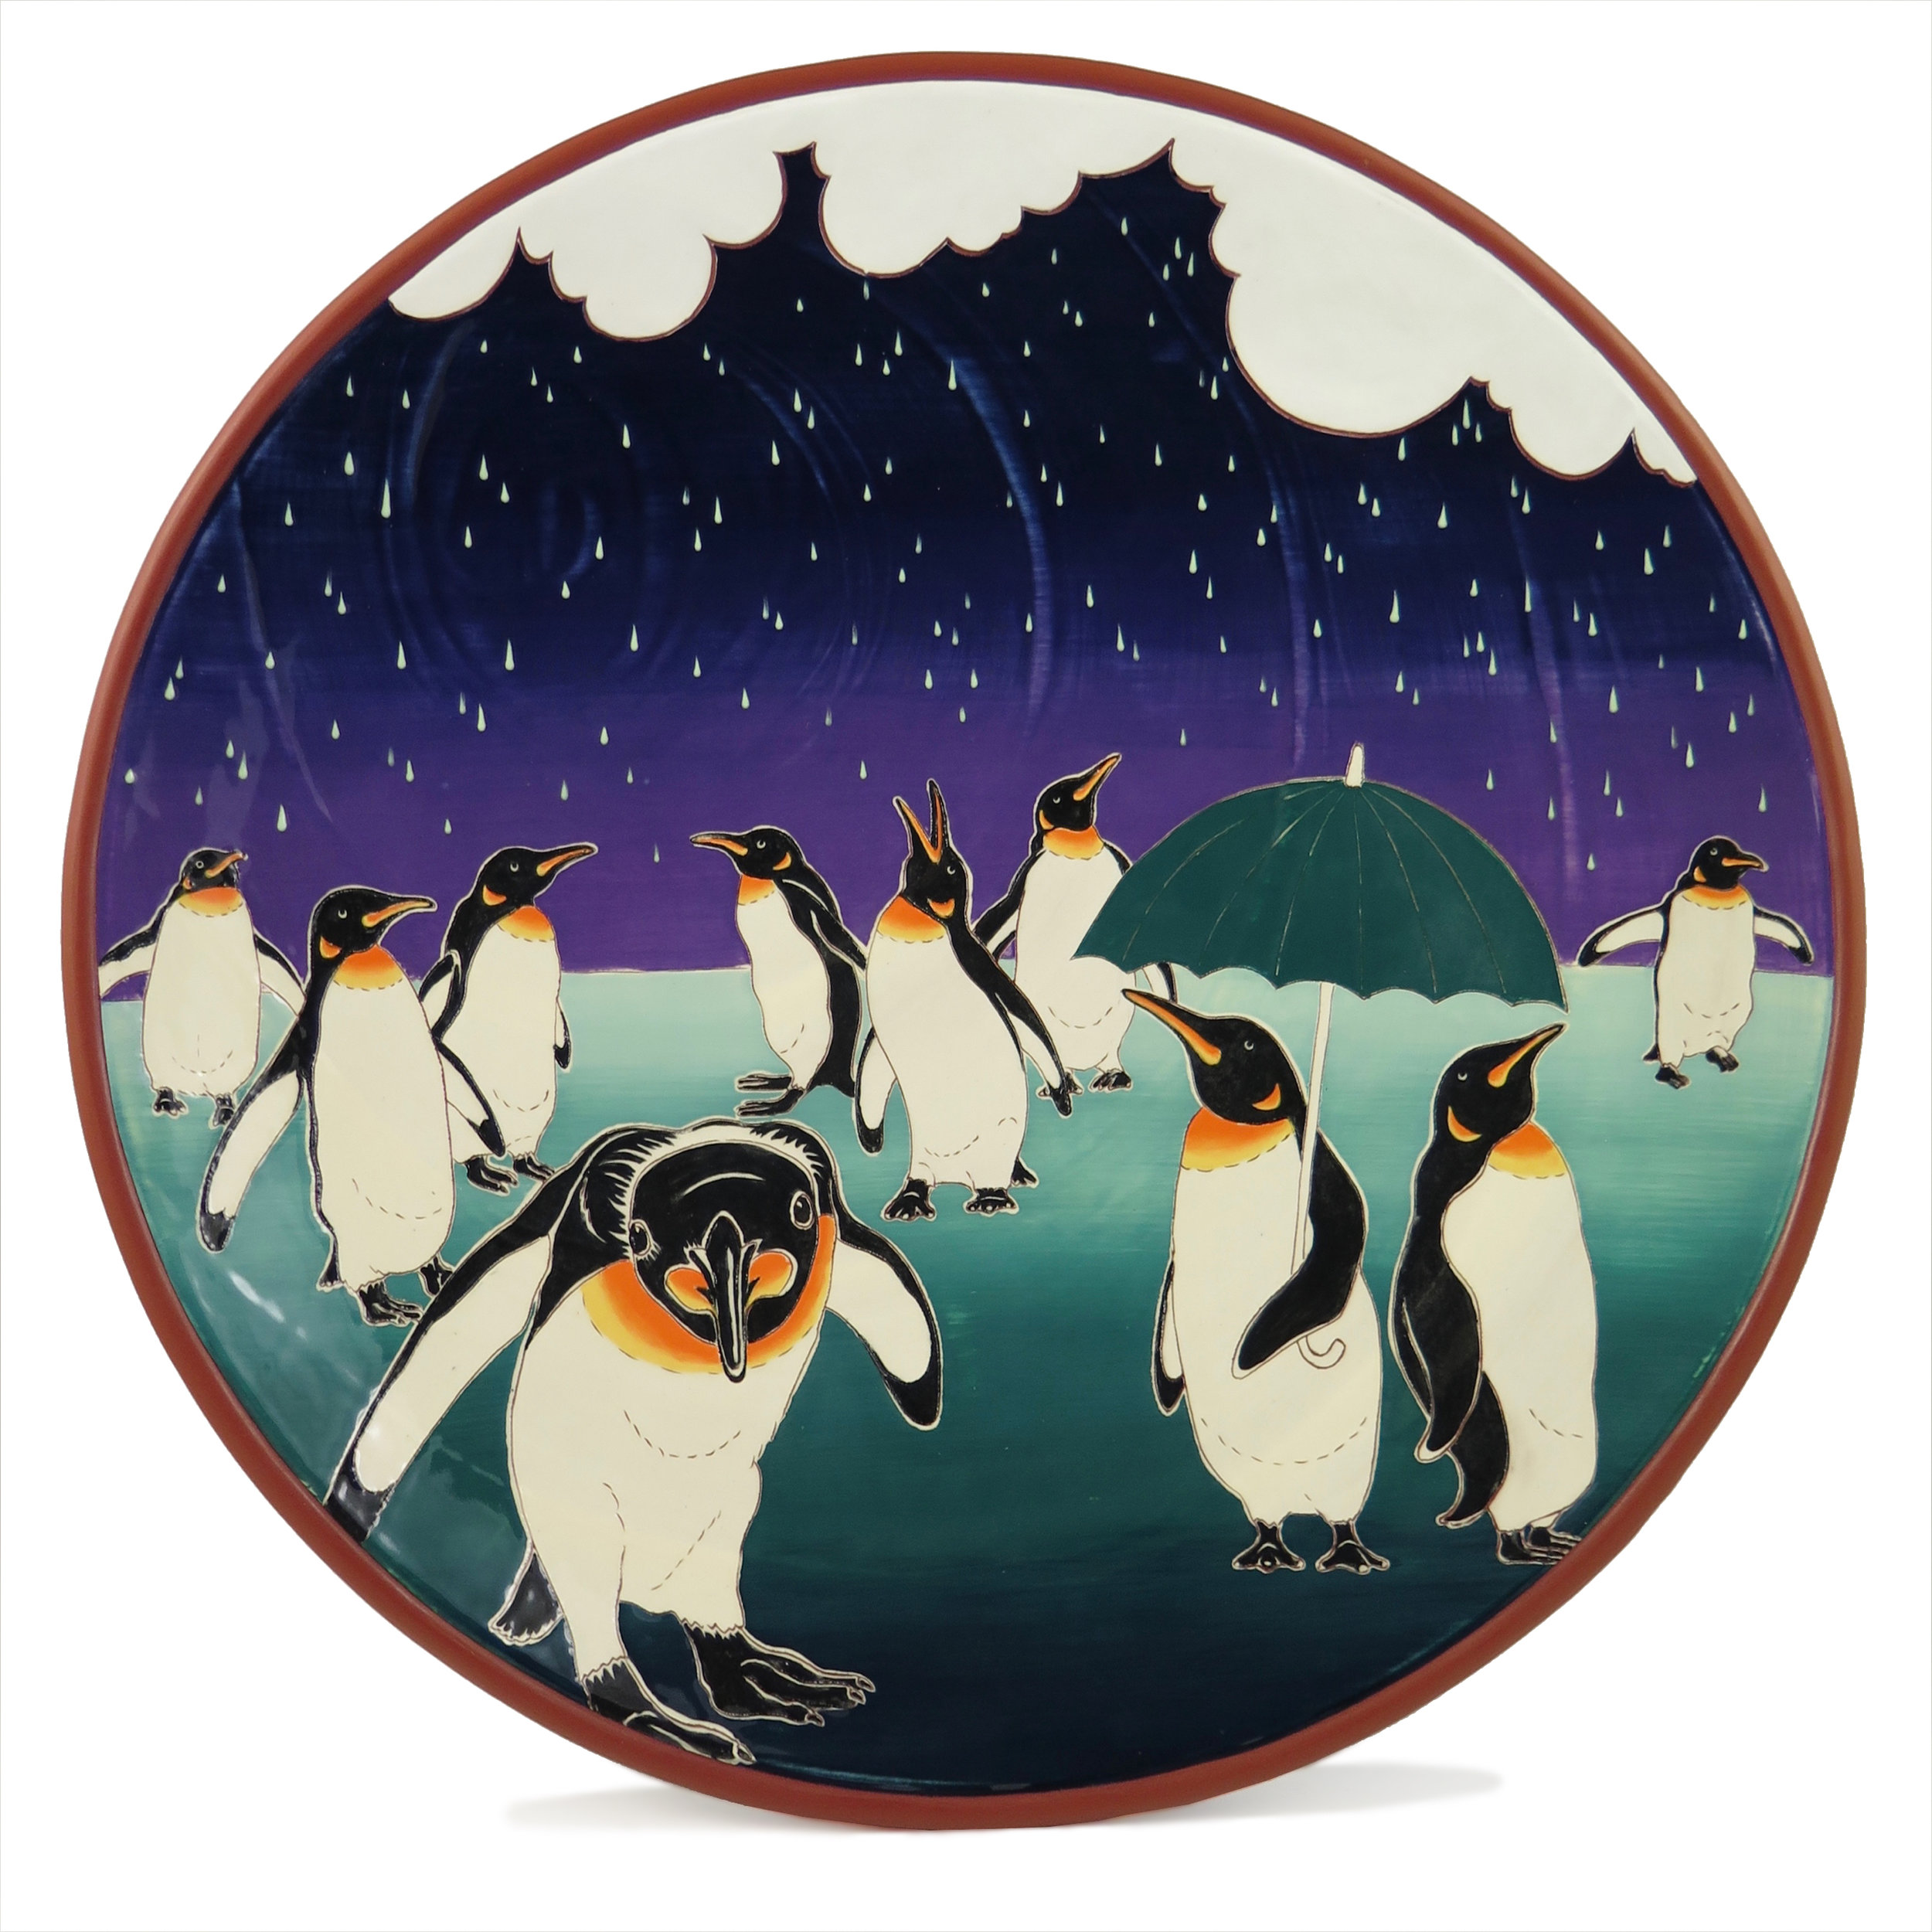 okrongly penguin platter.jpg